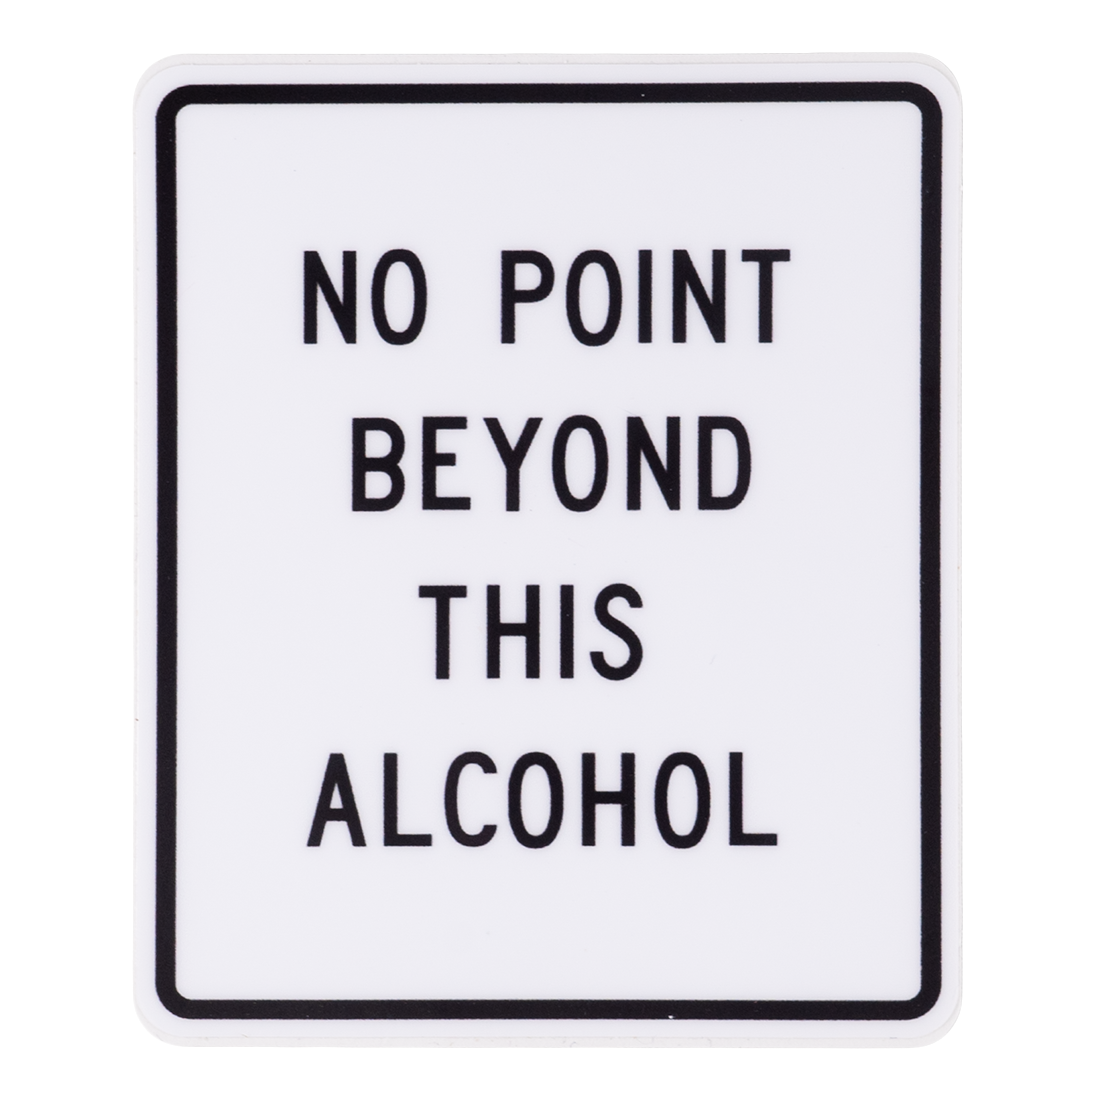 No Point Beyond This Alcohol Sticker